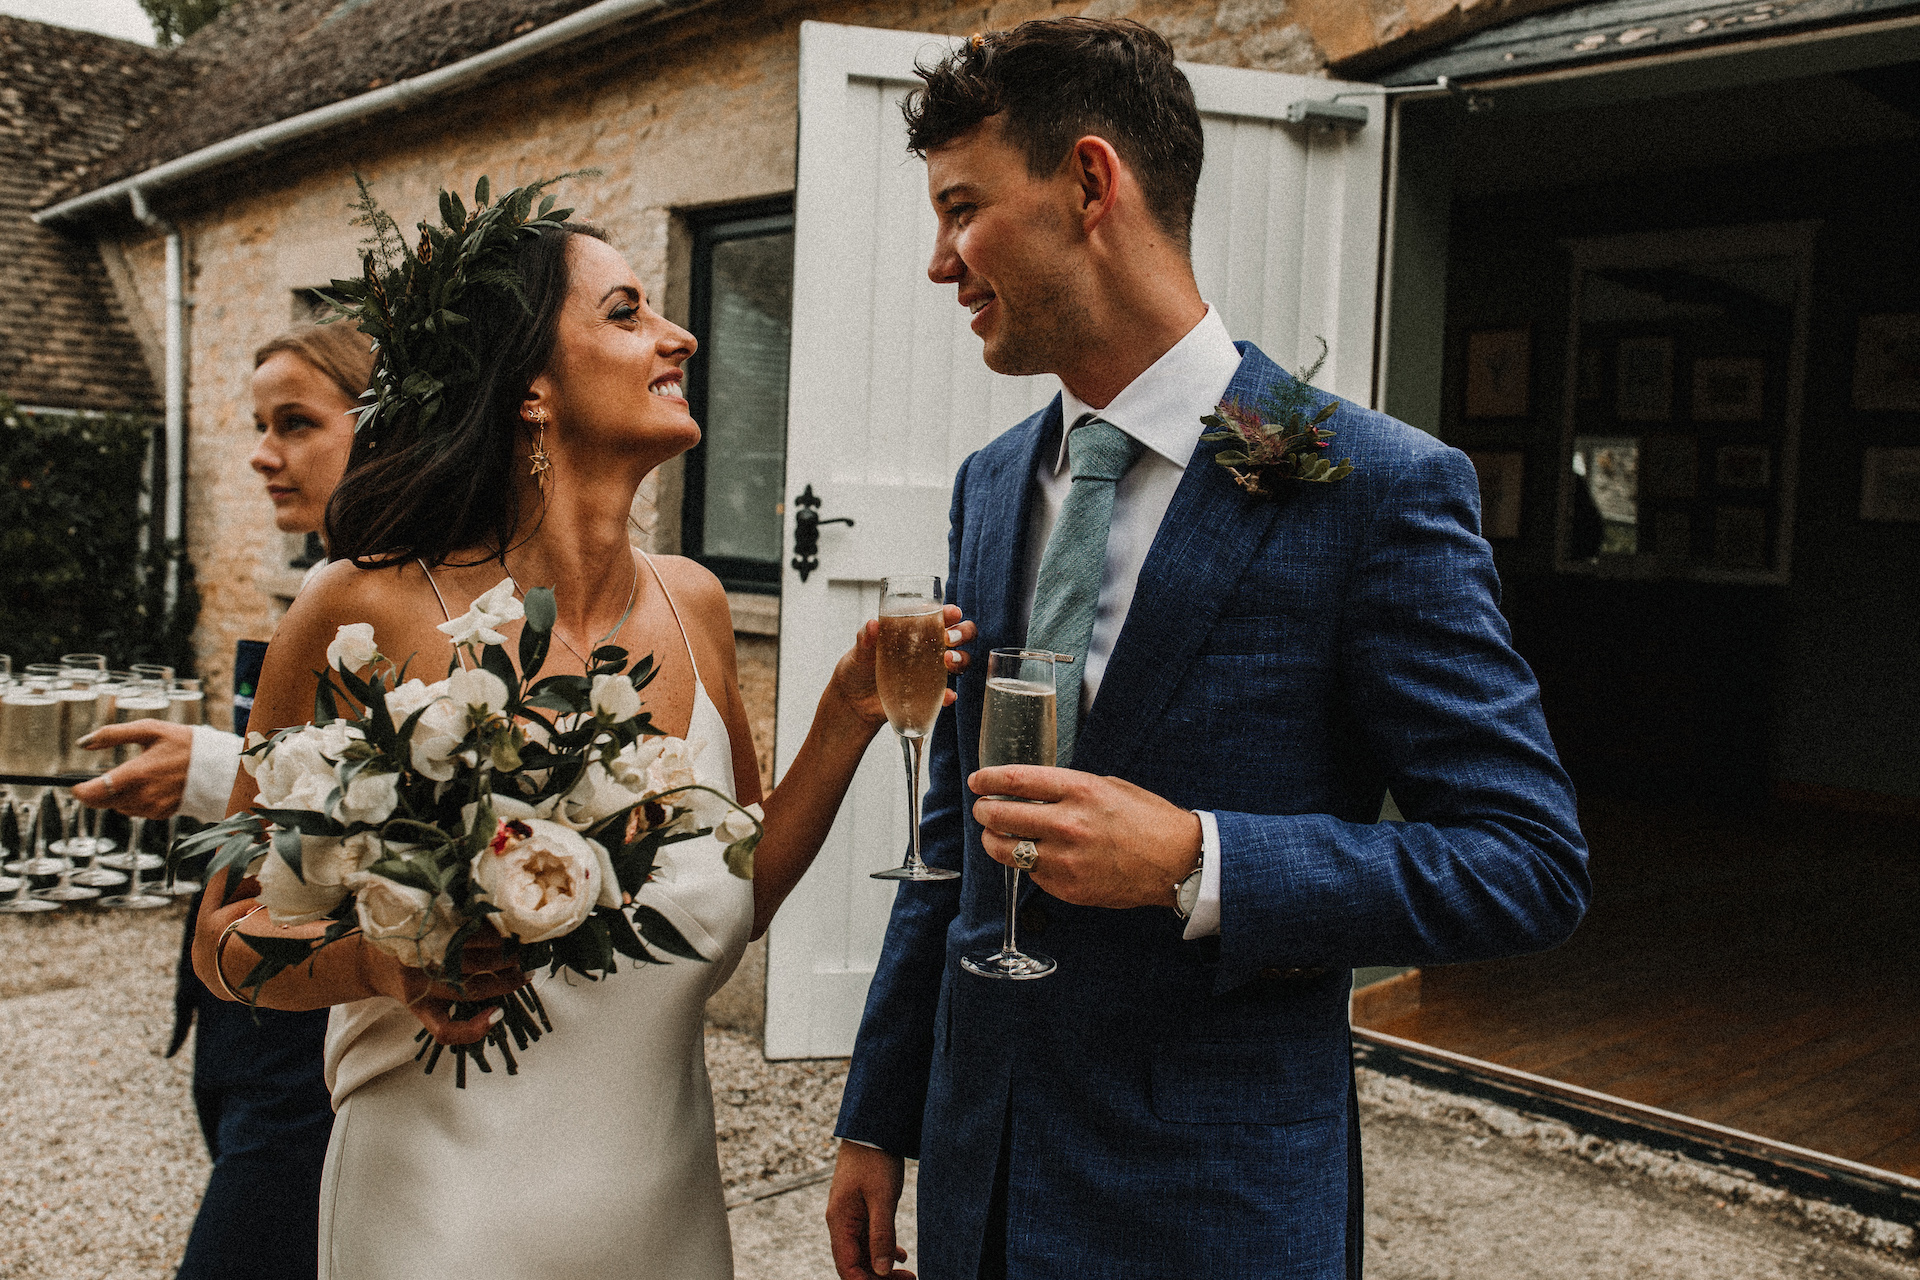 PapaKåta couple Hayley & Luke's Teepee Wedding in Ascott-Under-Wychwood, Oxon captured by Carla Blain Photography- Bridal Style